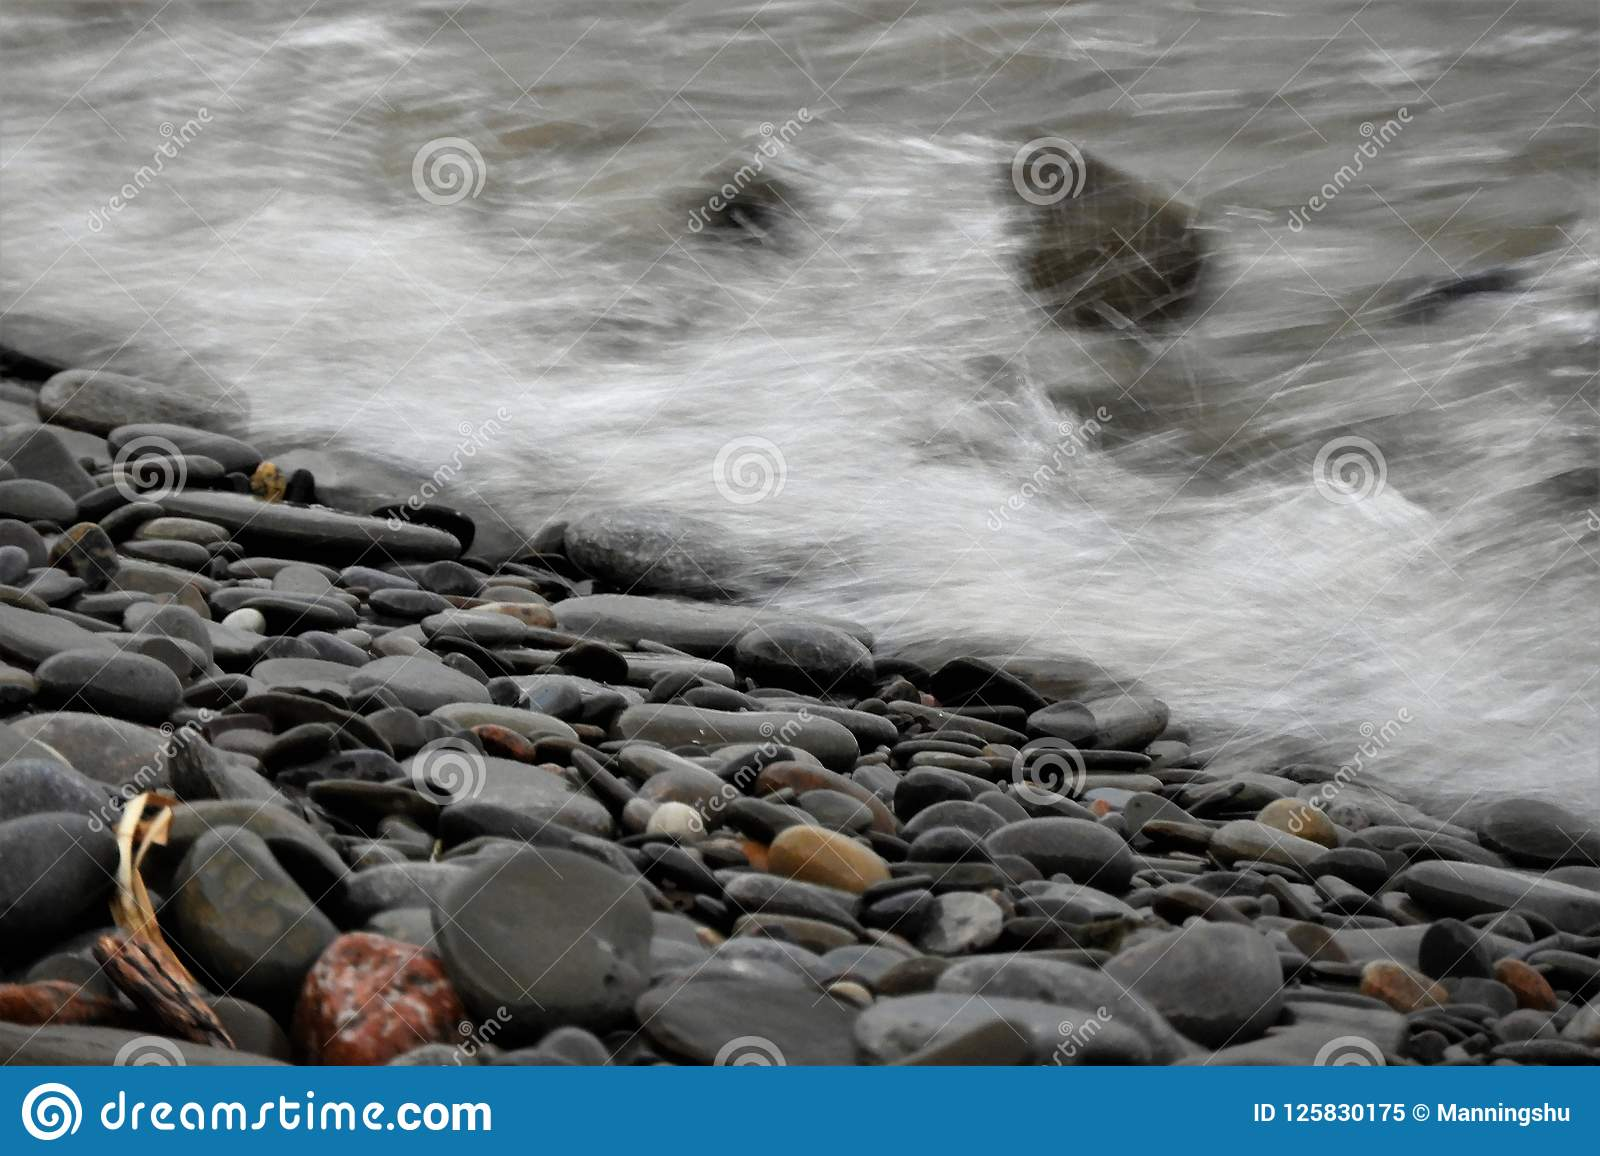 Water Crashing onto Shore After Storm